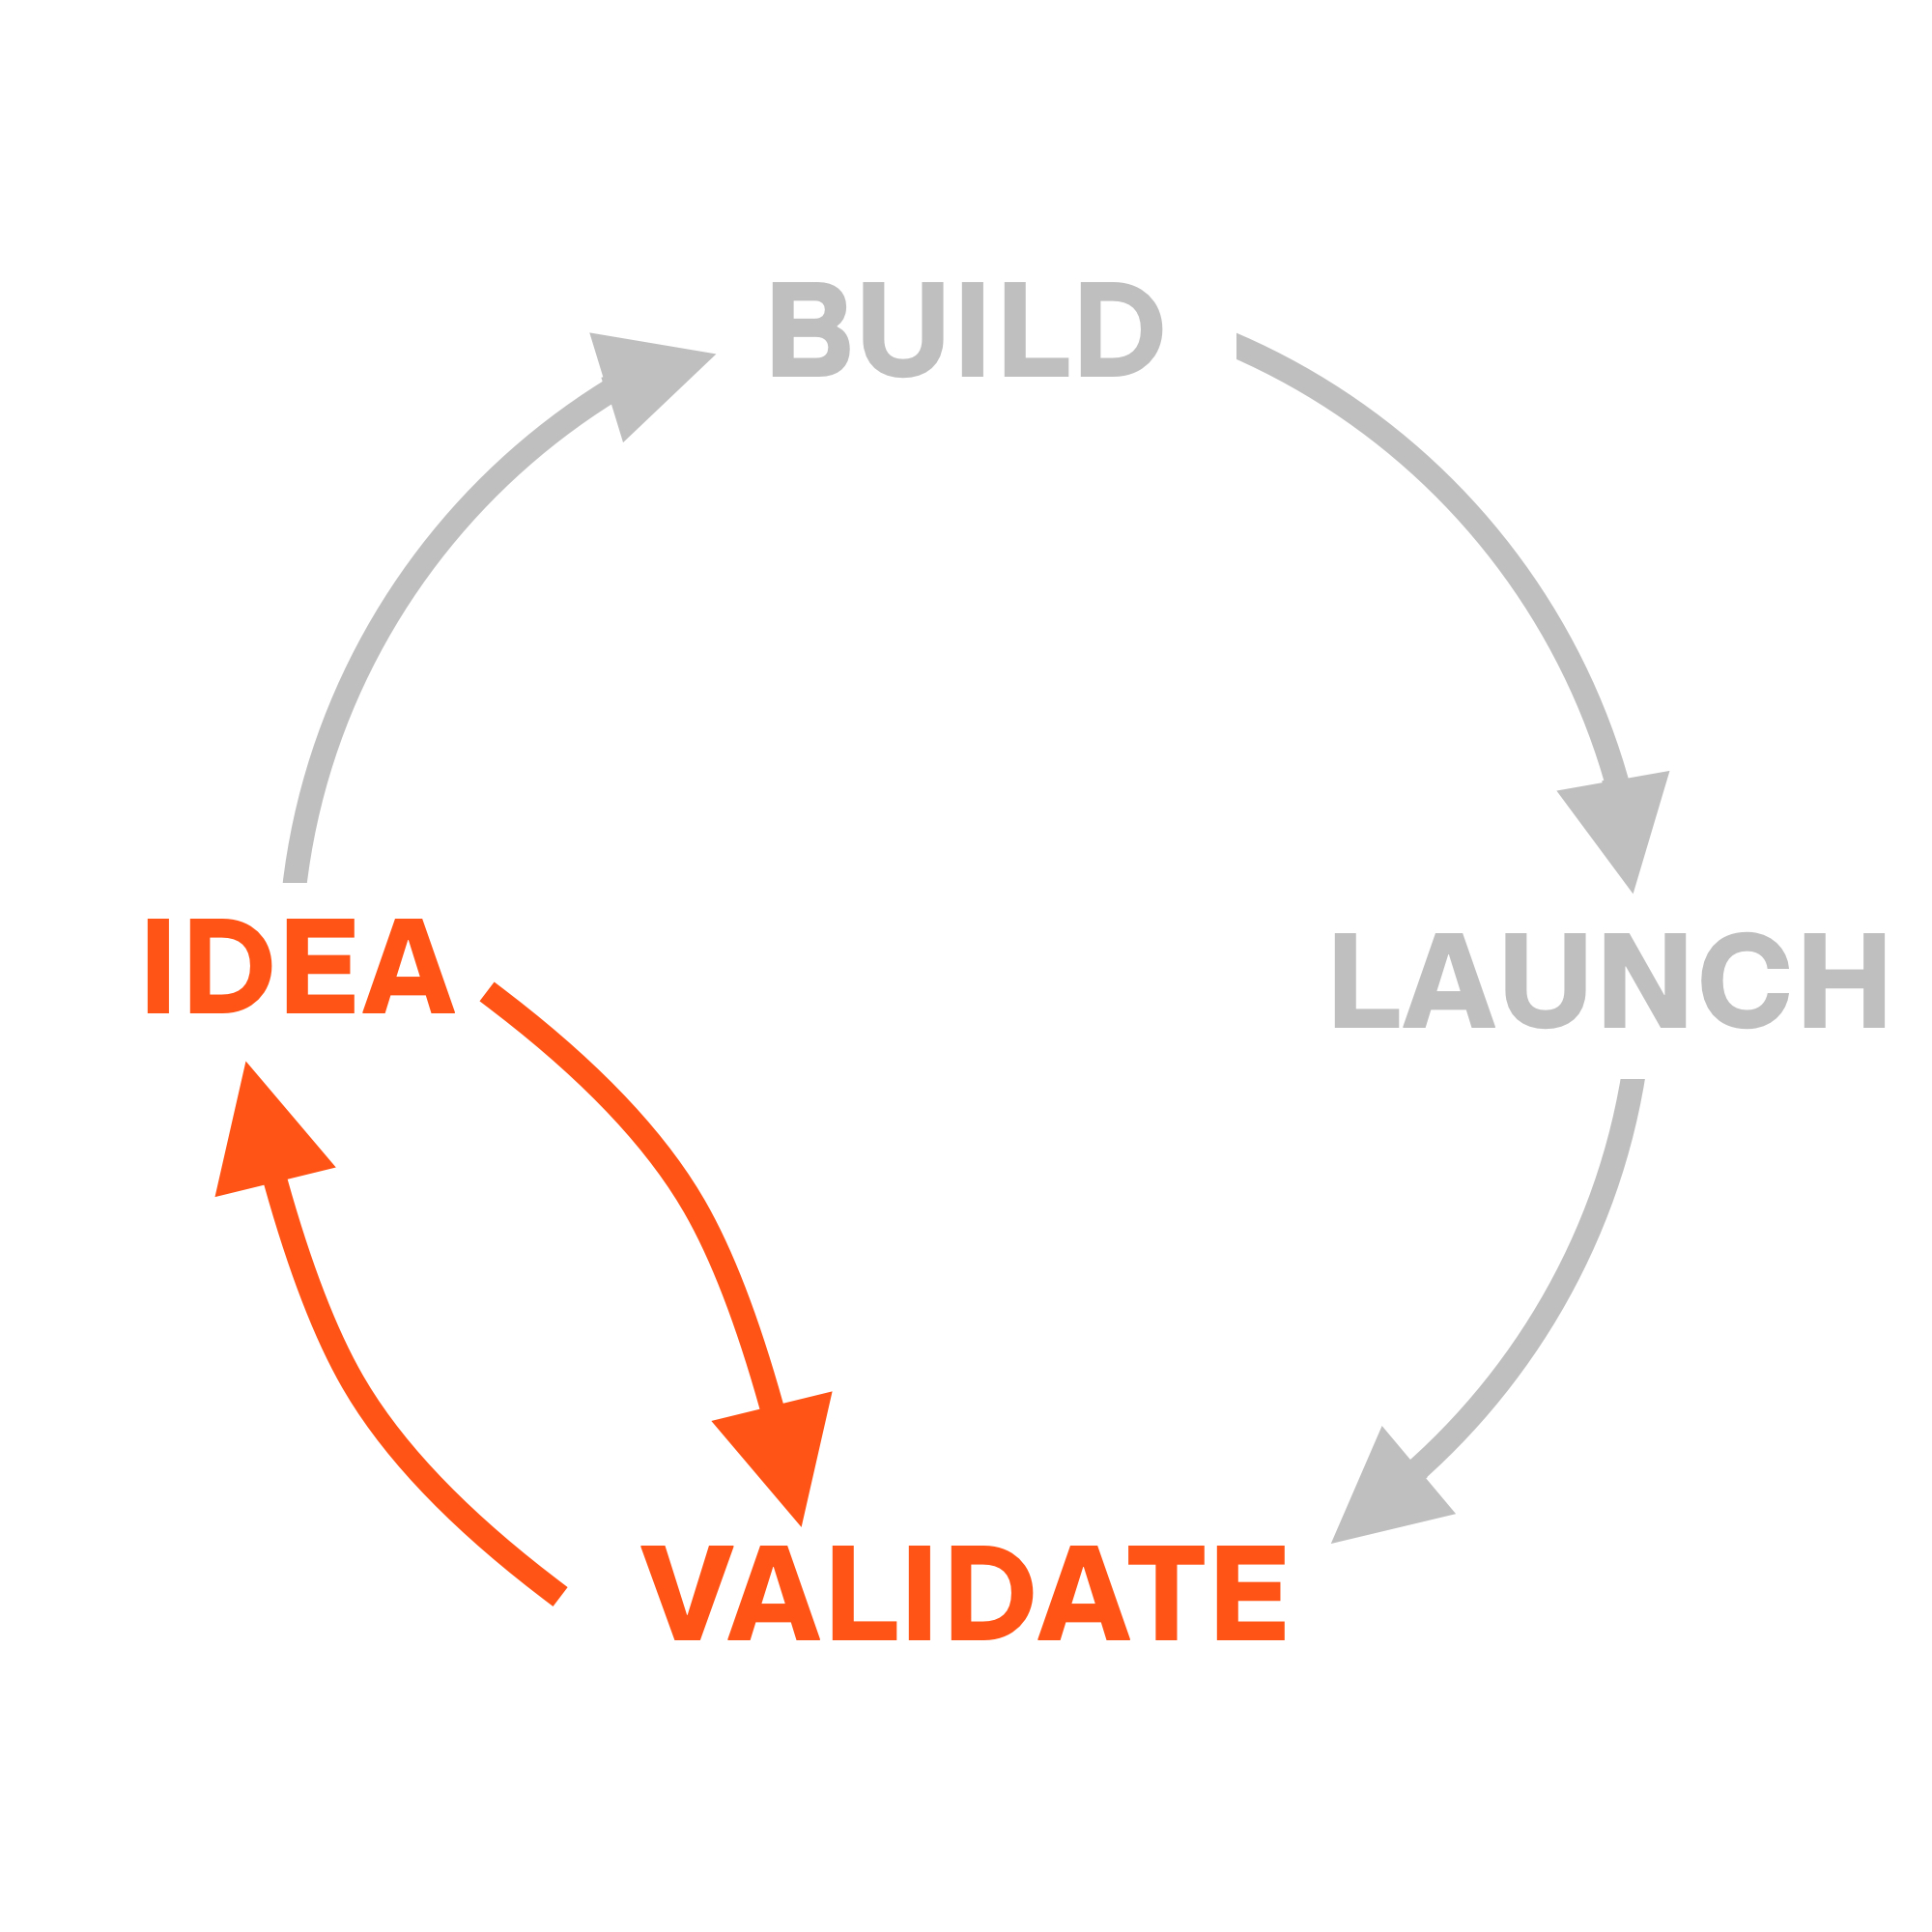 The Design Sprint cuts the fat and validates the idea directly, without building it or launching it first.